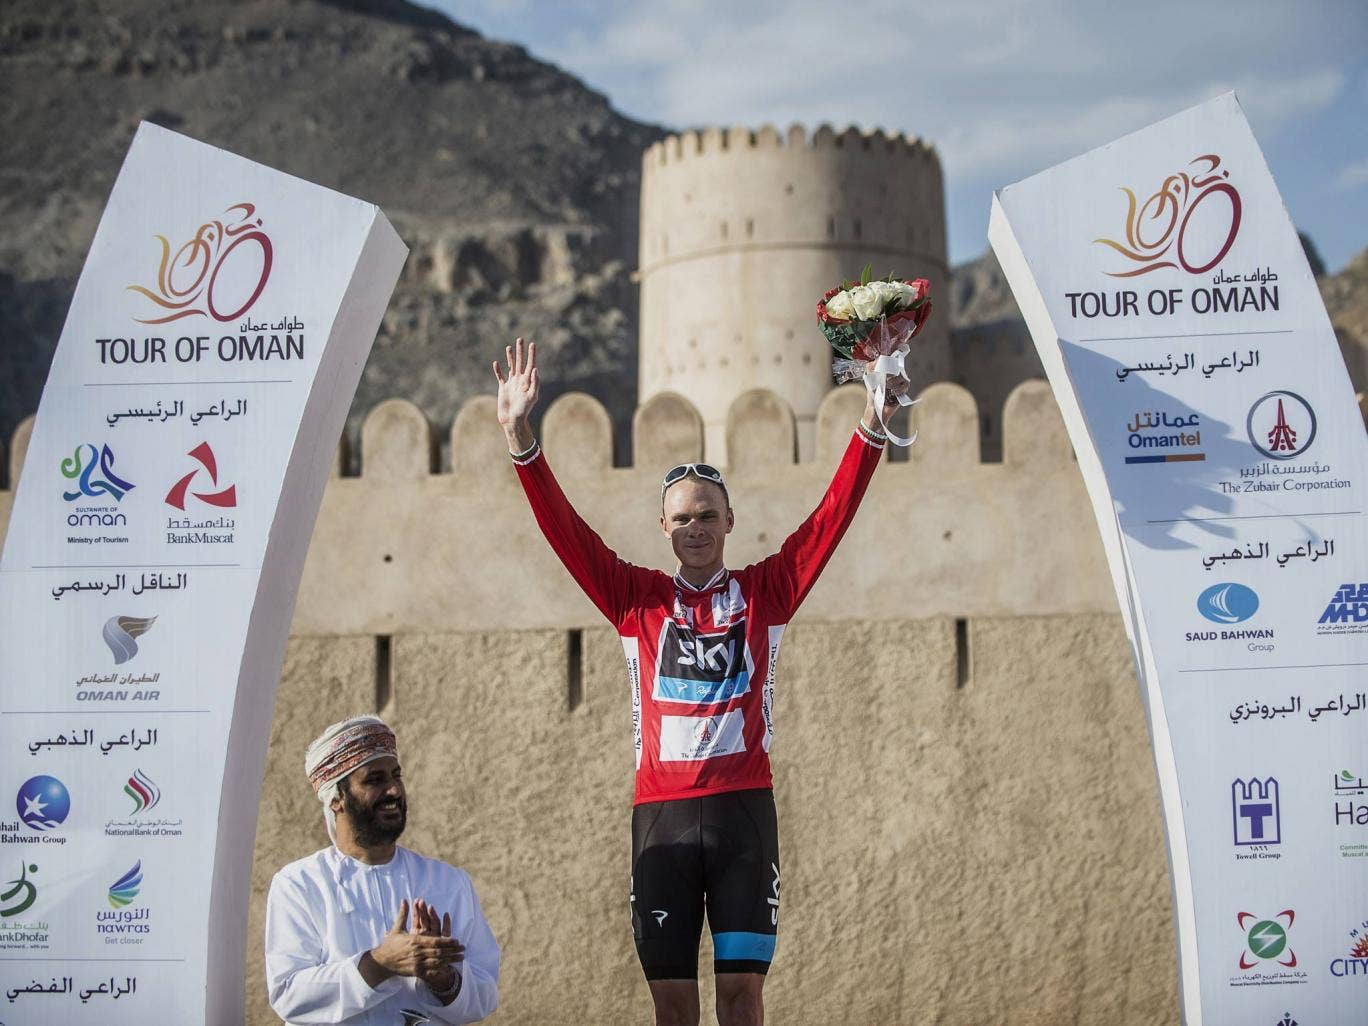 Chris Froome with the Tour of Oman leader's red jersey